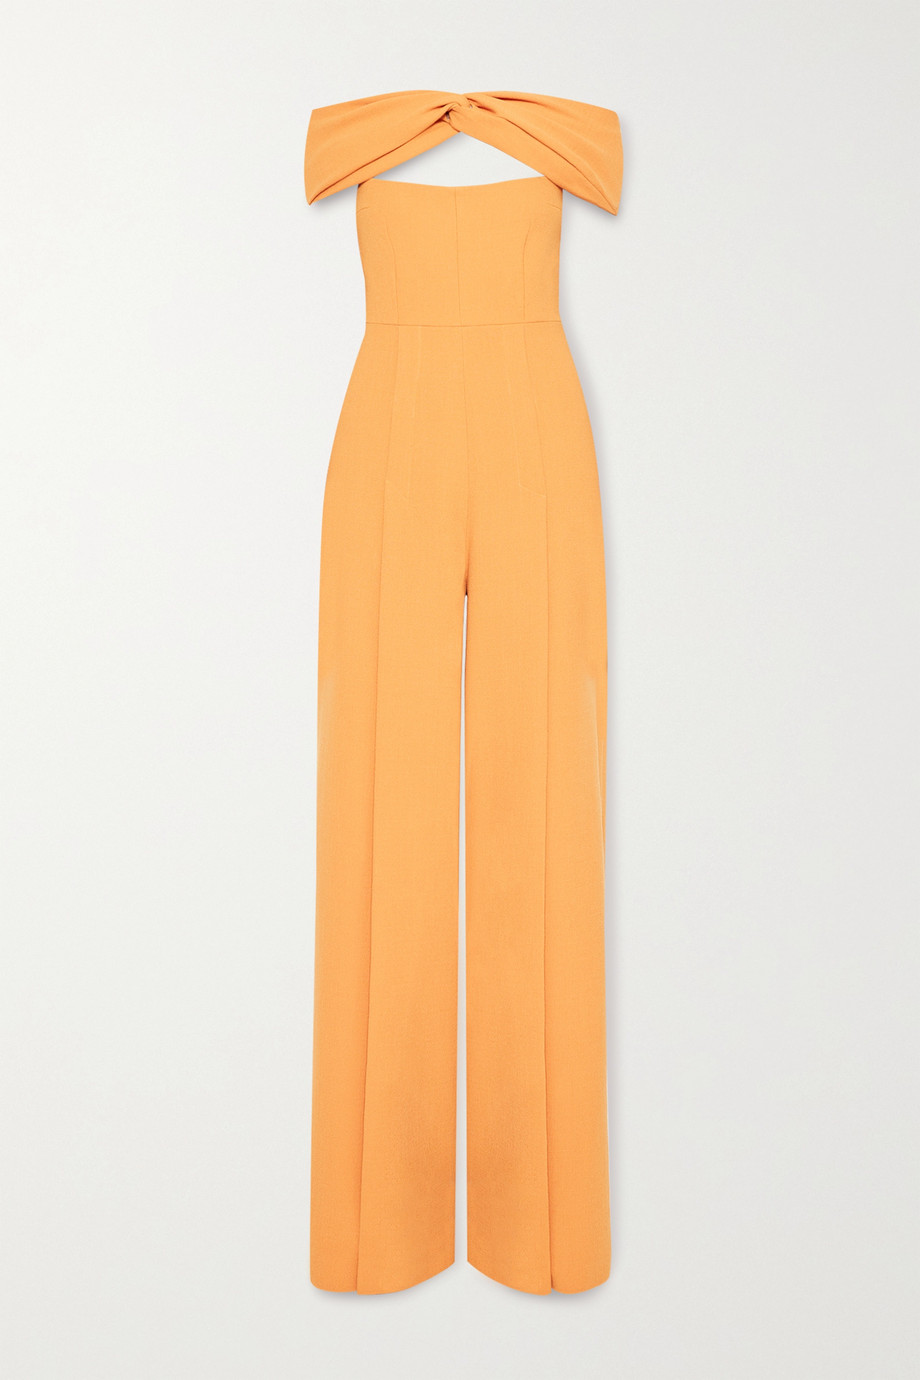 Emilia Wickstead Glenna off-the-shoulder cutout wool-crepe jumpsuit